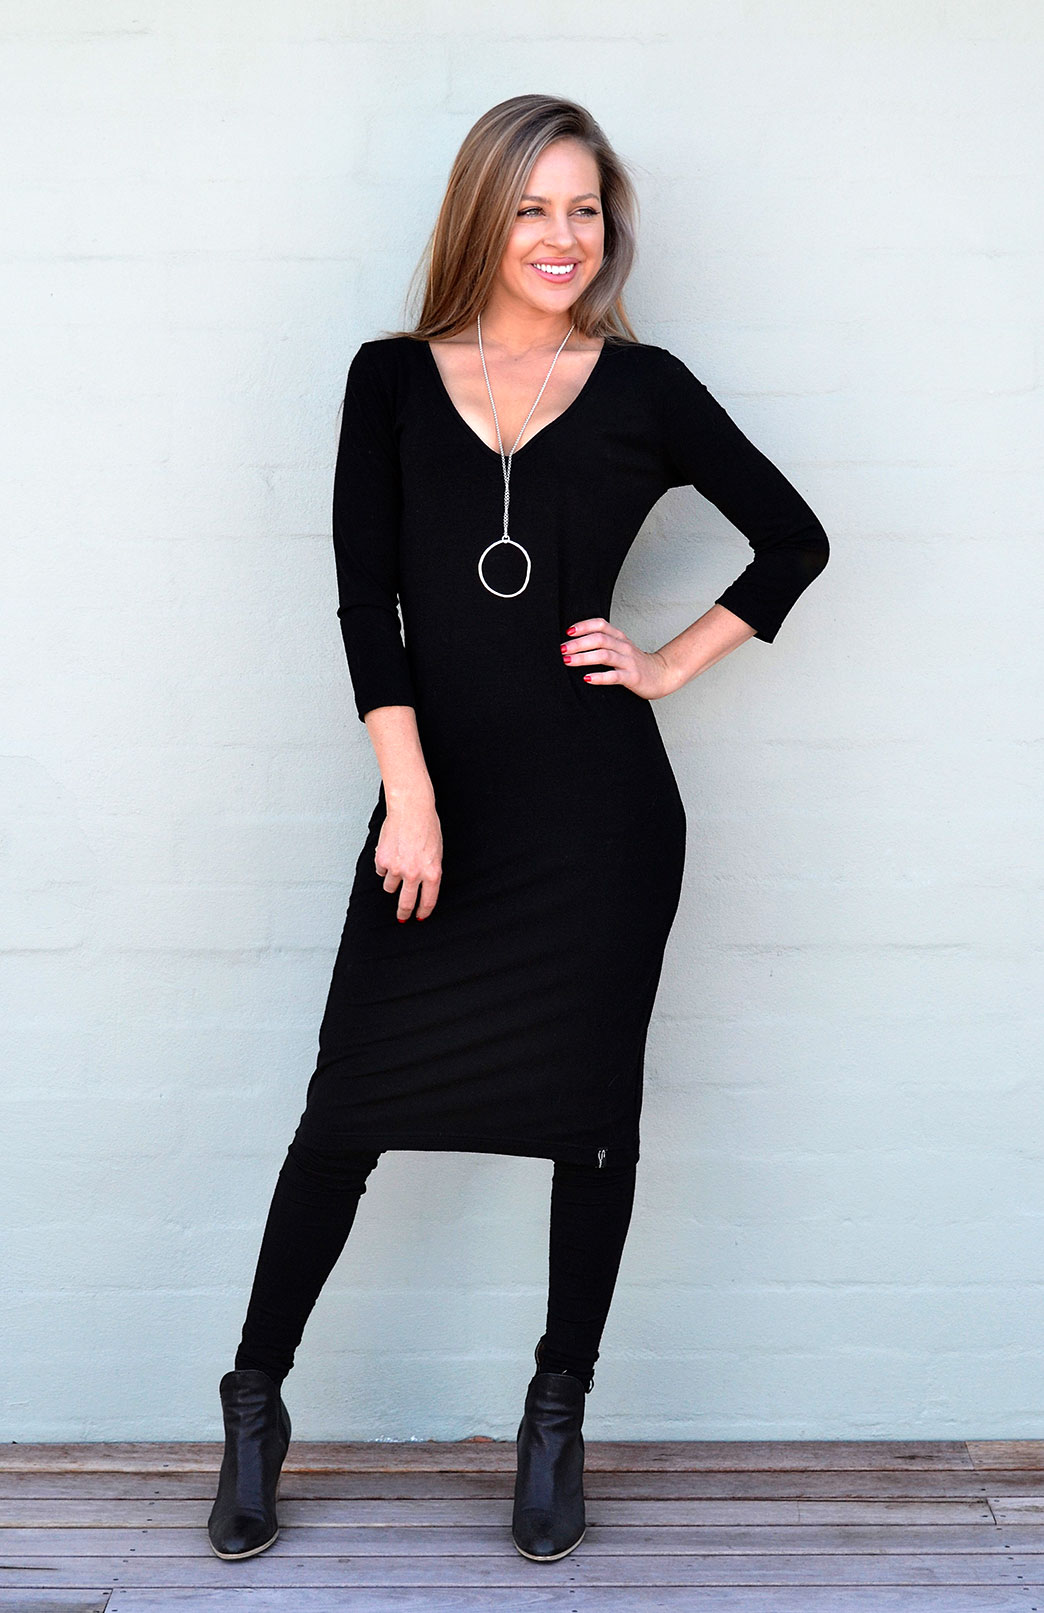 V-Neck Dress - 3/4 Sleeved - Women's Black Merino Wool V-Neck Fitted Dress with 3/4 Sleeves and no fastenings - Smitten Merino Tasmania Australia